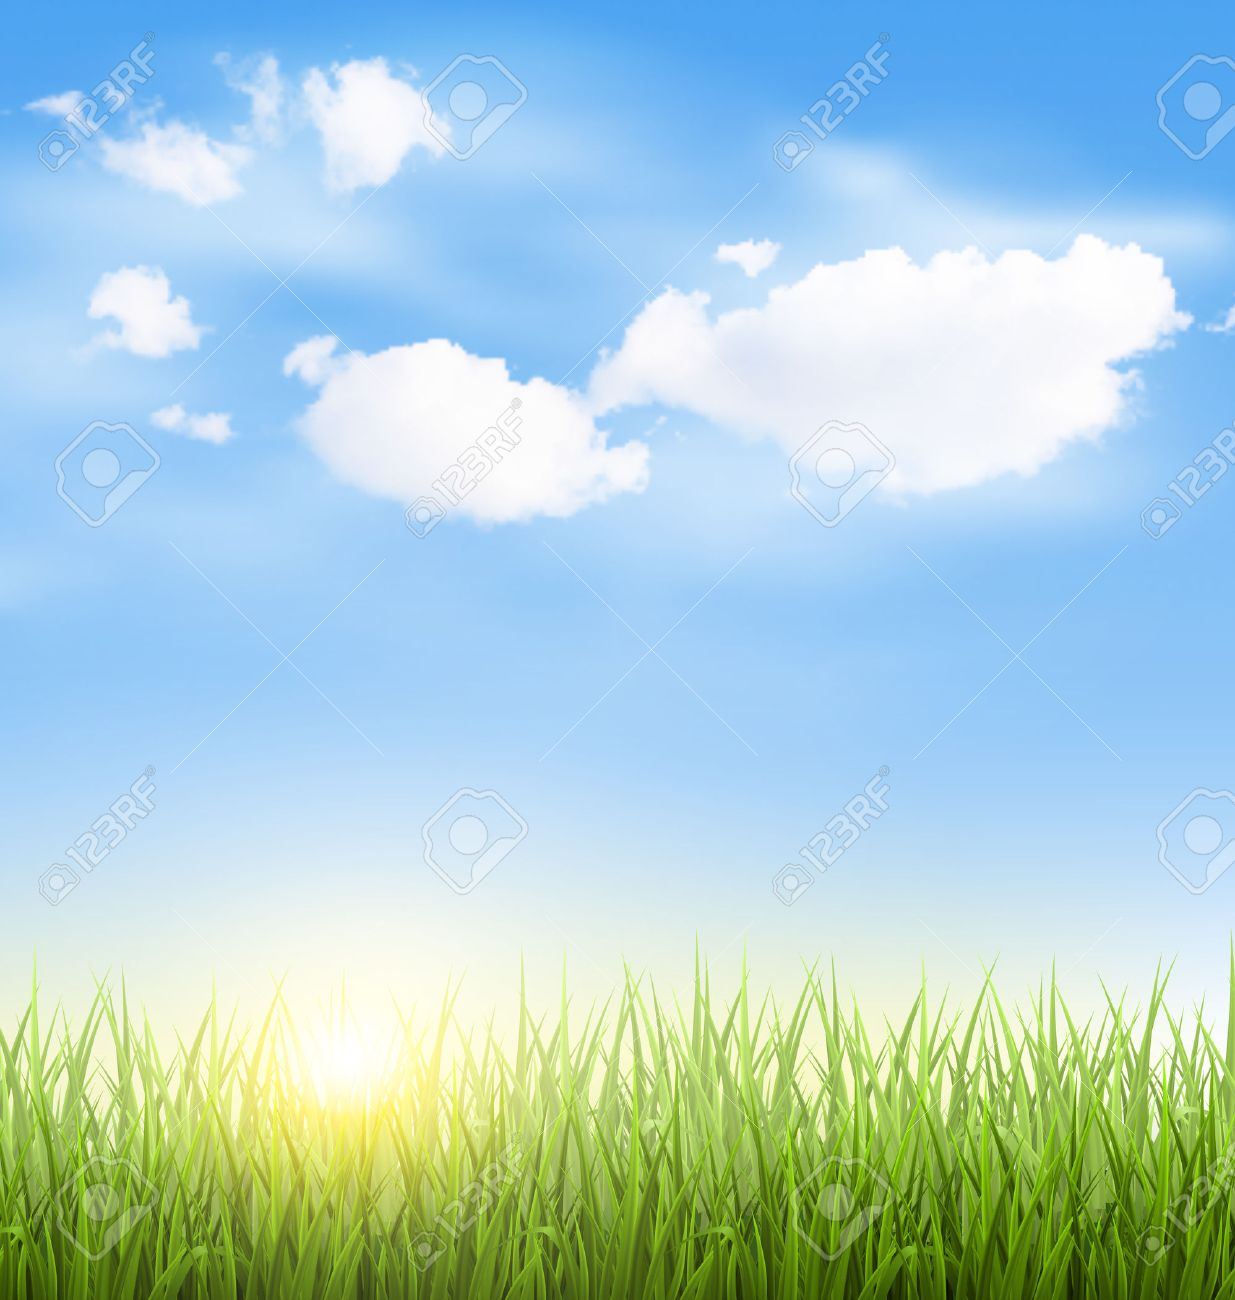 Green grass lawn with clouds and sun on blue sky - 40310335